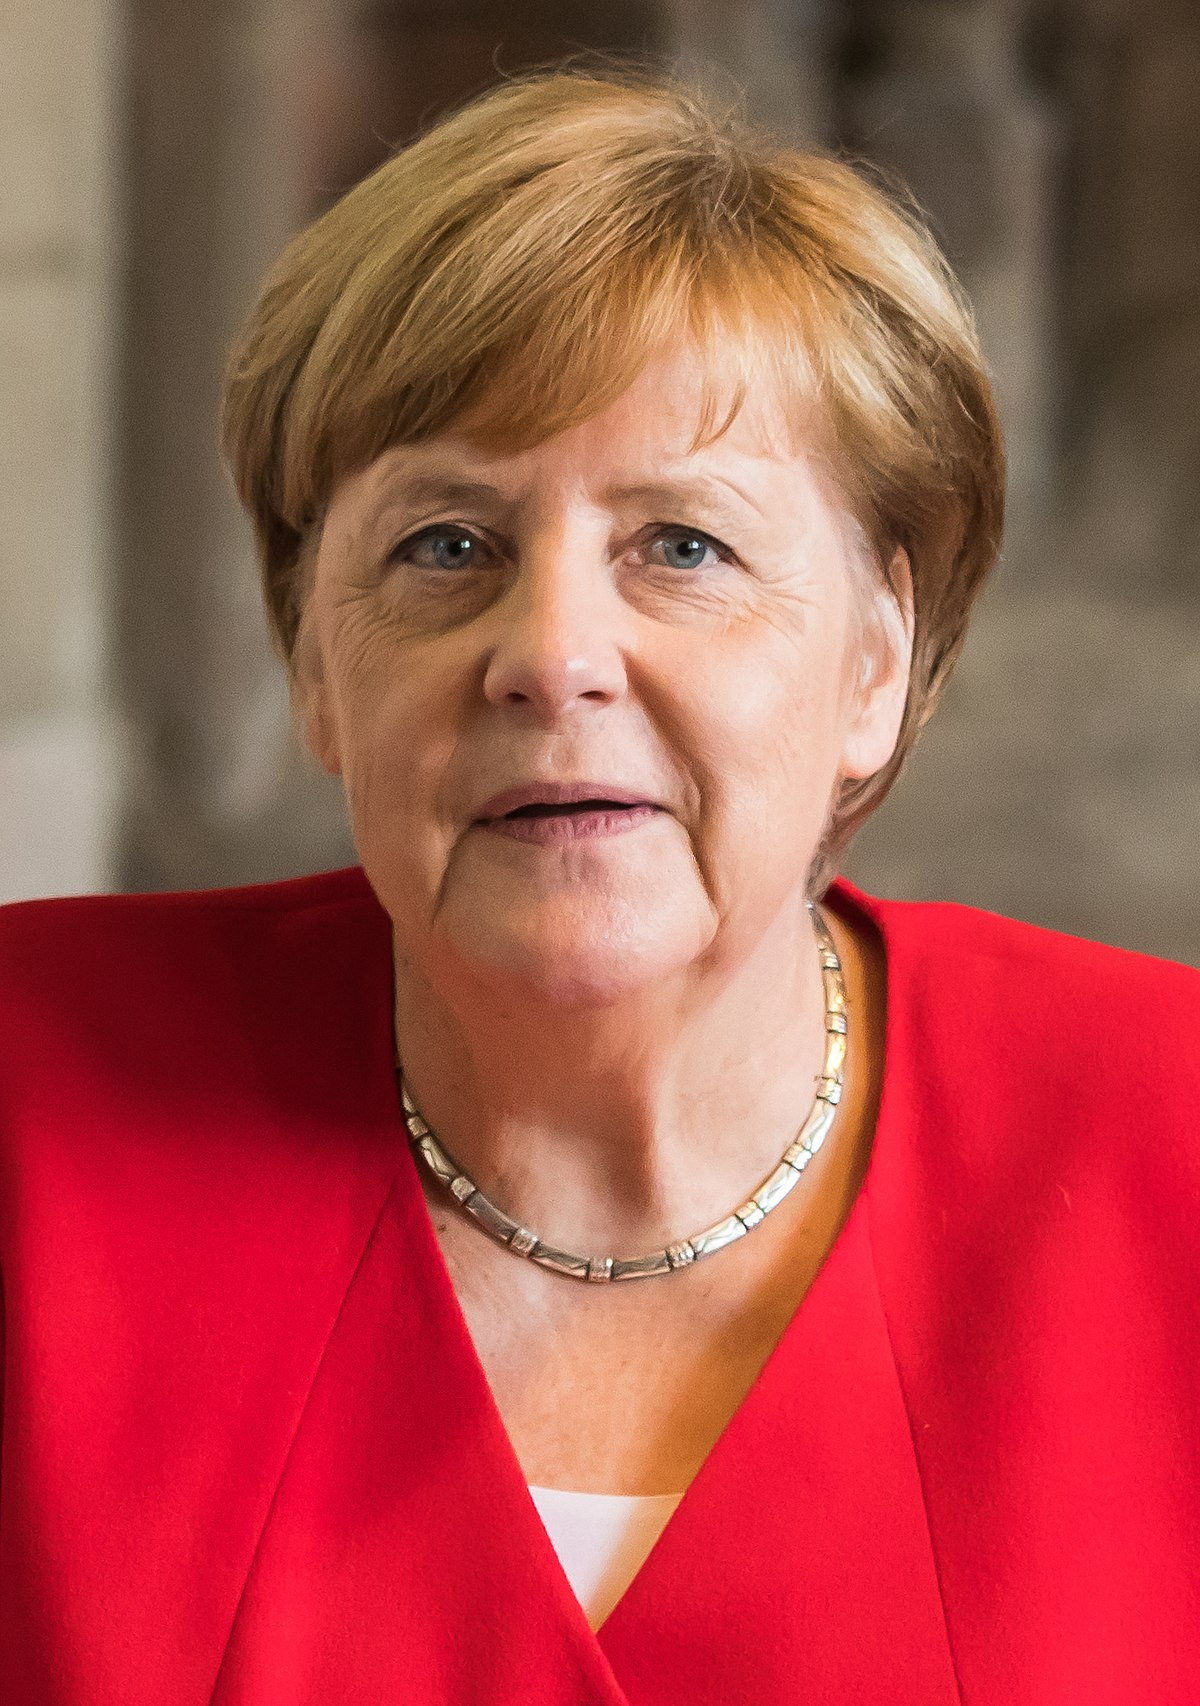 File Angela Merkel 2019 Cropped Jpg Wikimedia Commons